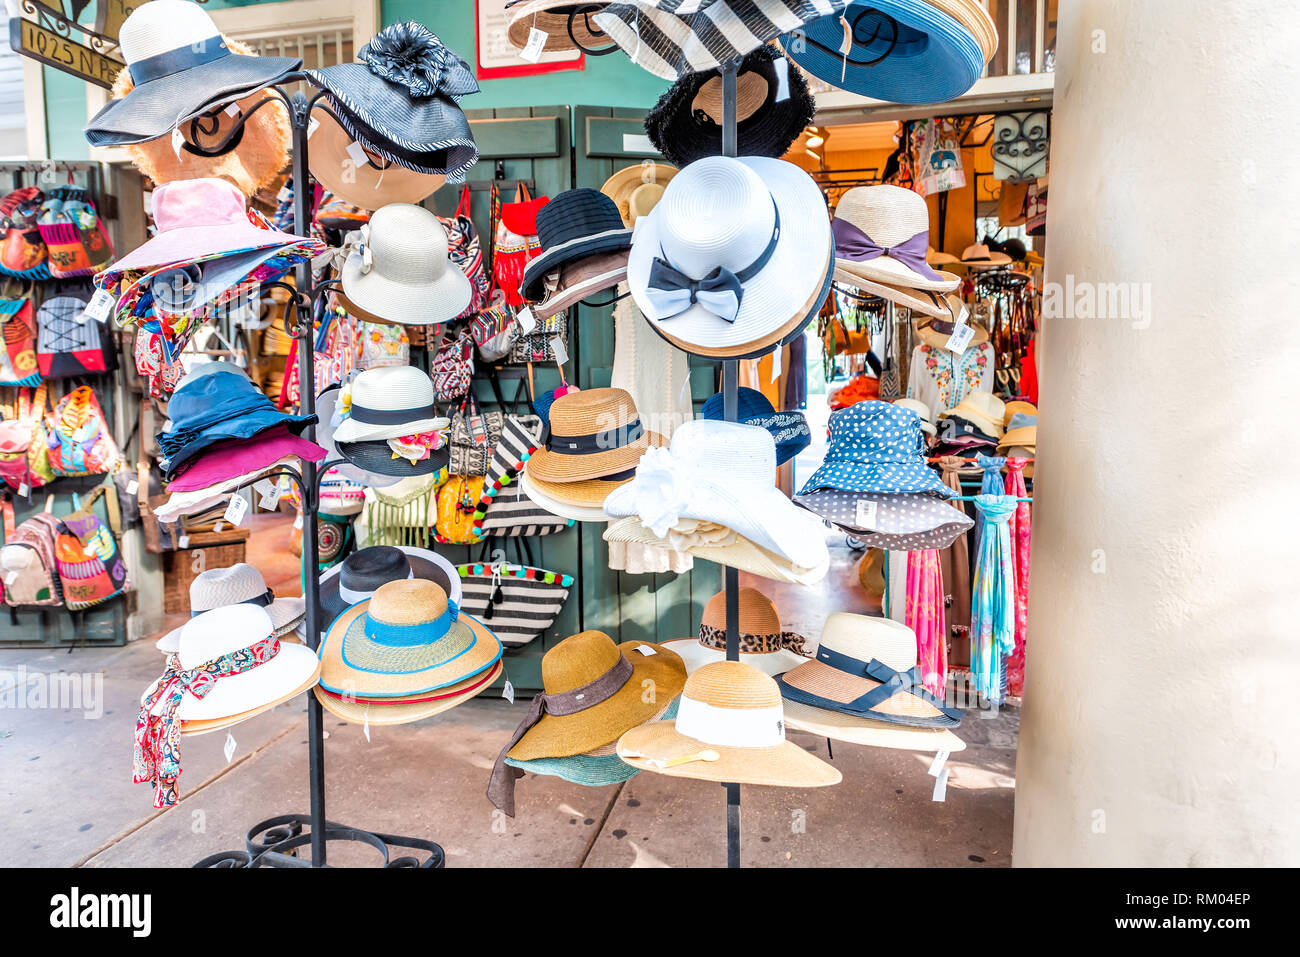 a6f43af4a89da Many Hats Stock Photos   Many Hats Stock Images - Alamy